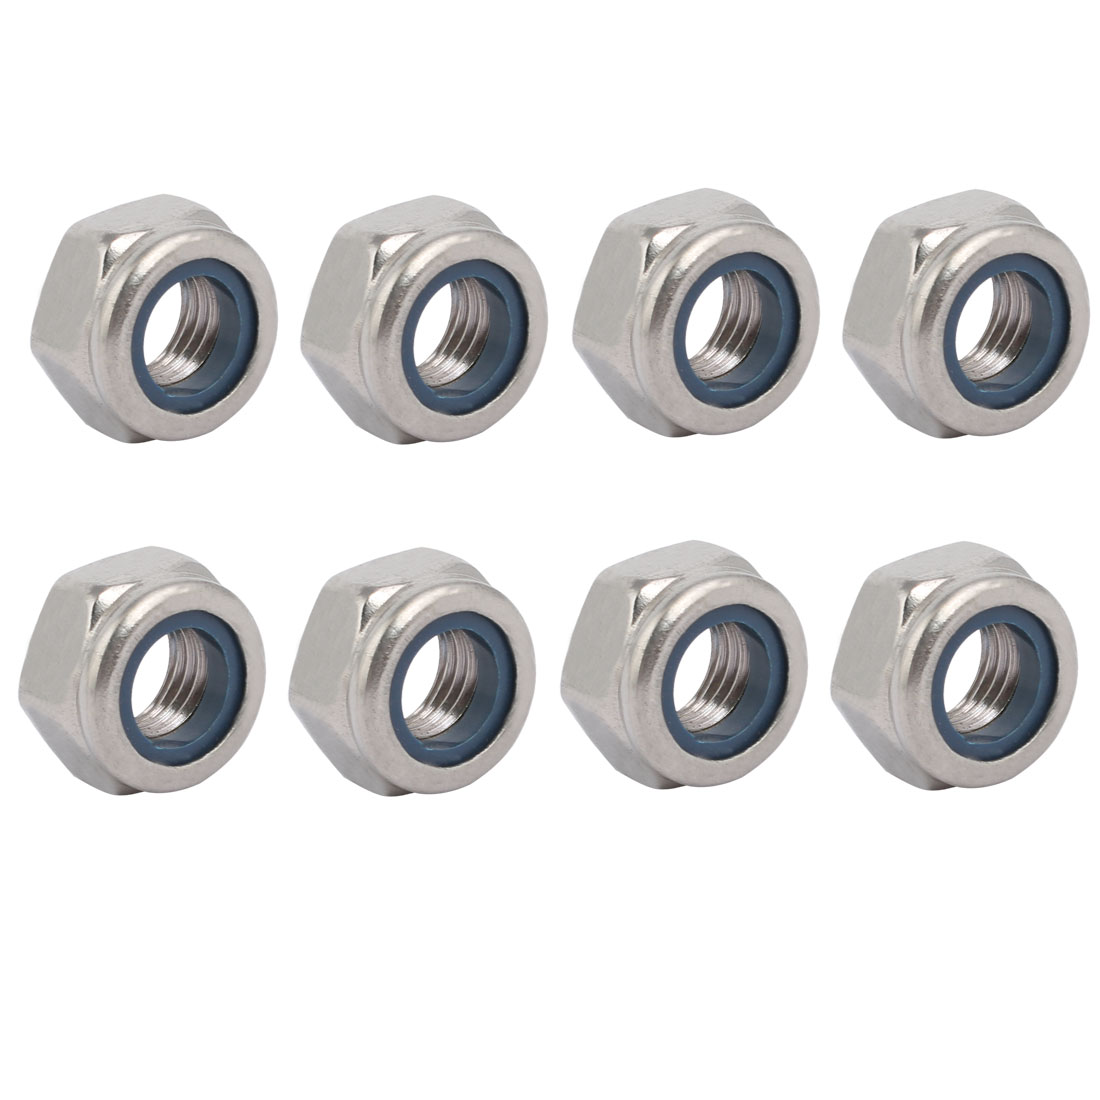 8pcs M10 x 1.5mm Pitch Metric Fine Thread 304 Stainless Steel Hex Lock Nuts